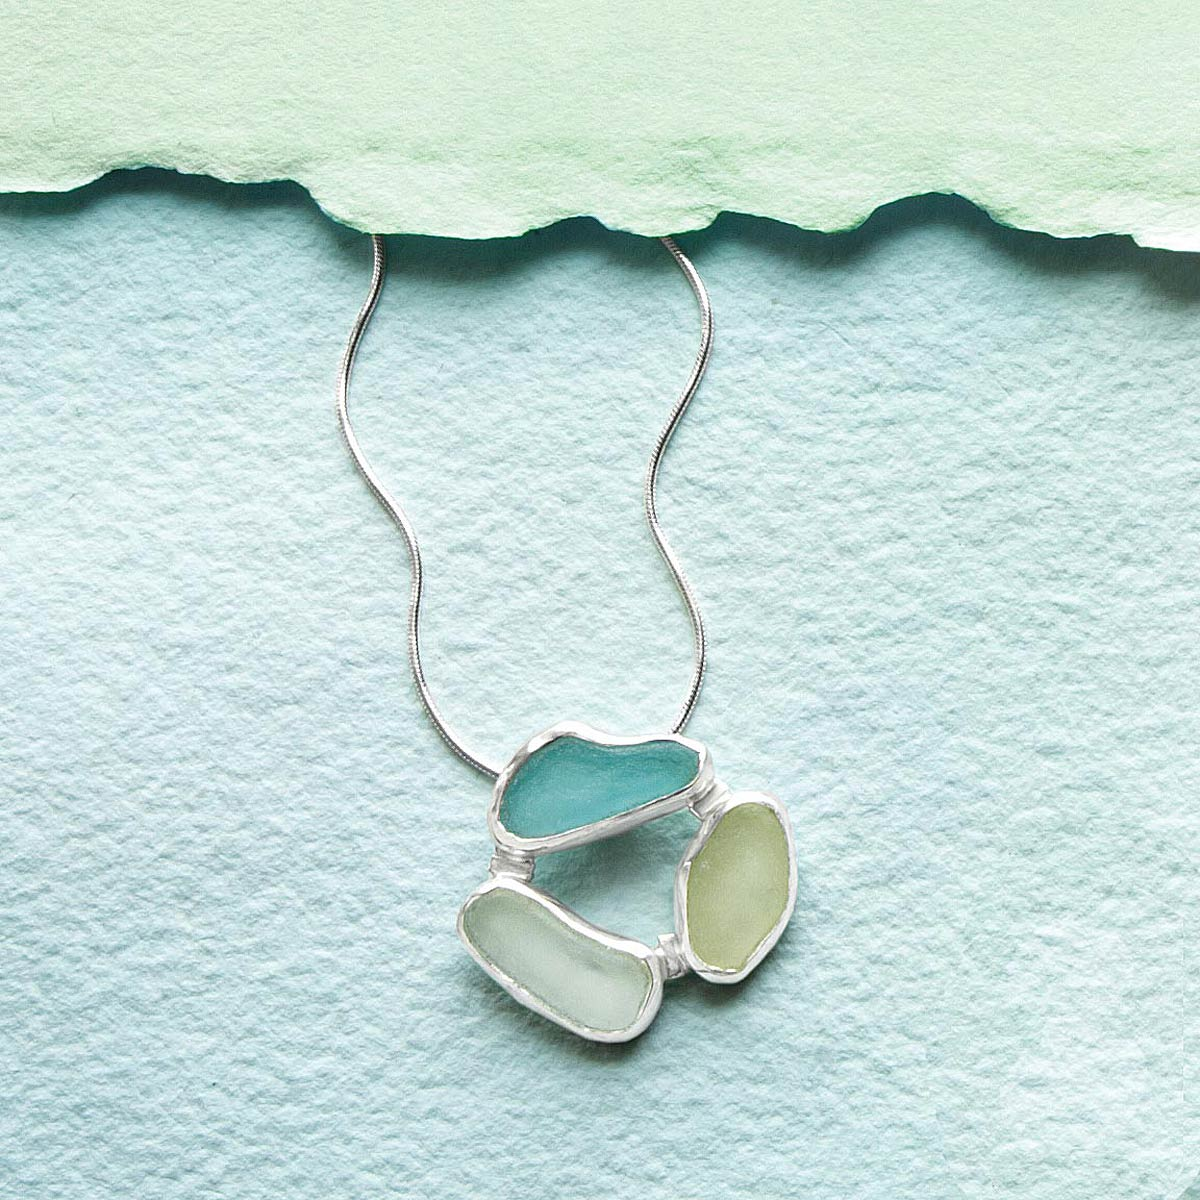 3 Stones Sea Glass Necklace | UncommonGoods